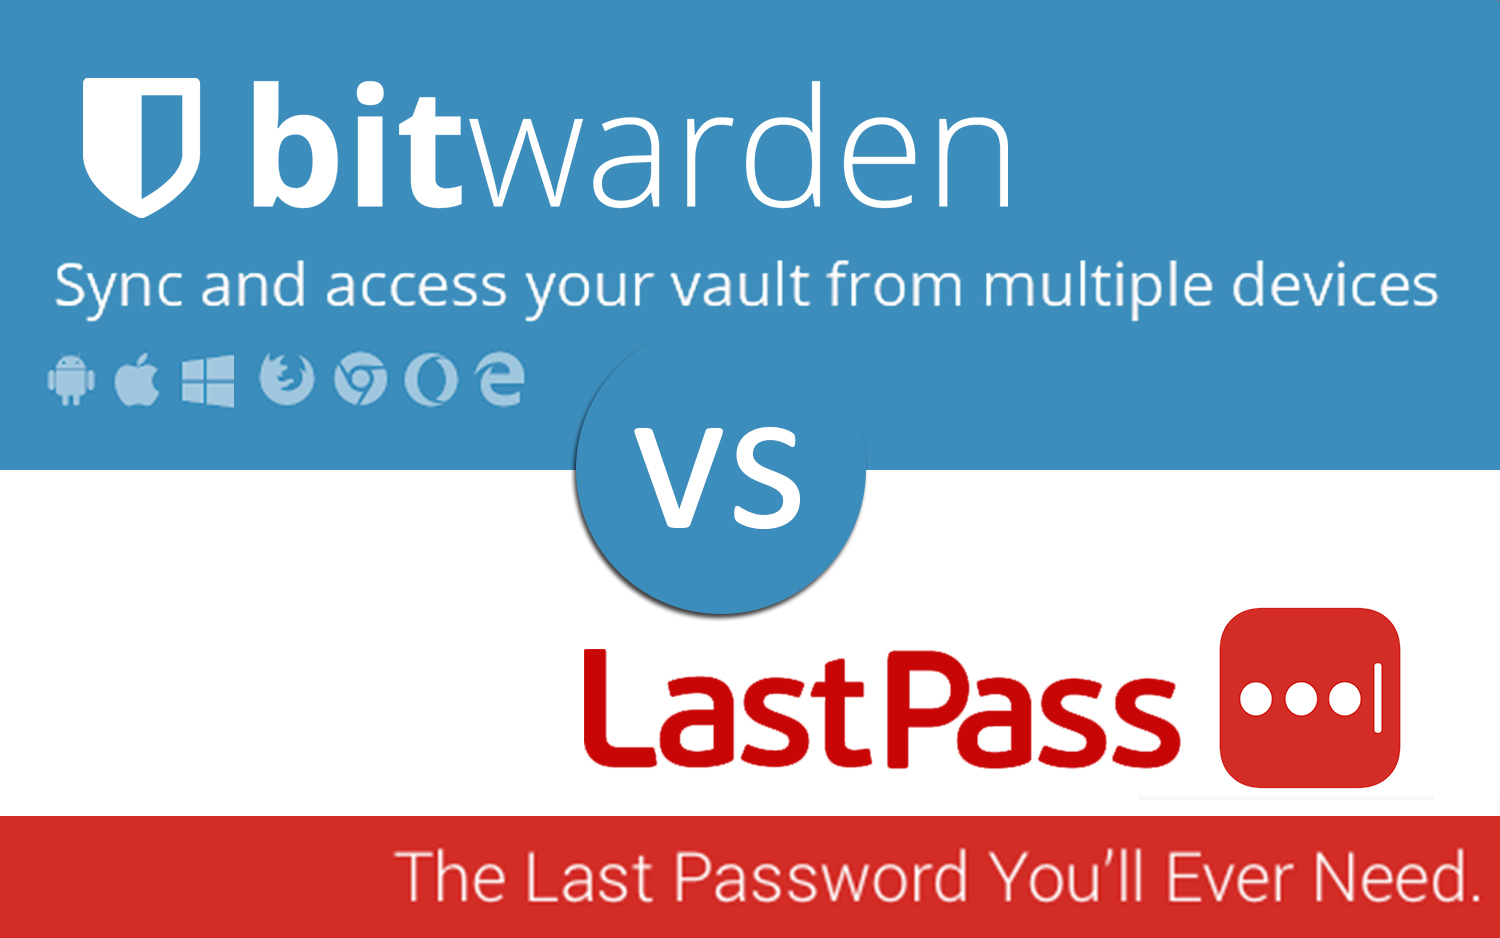 bitwarden-vs-lastpass